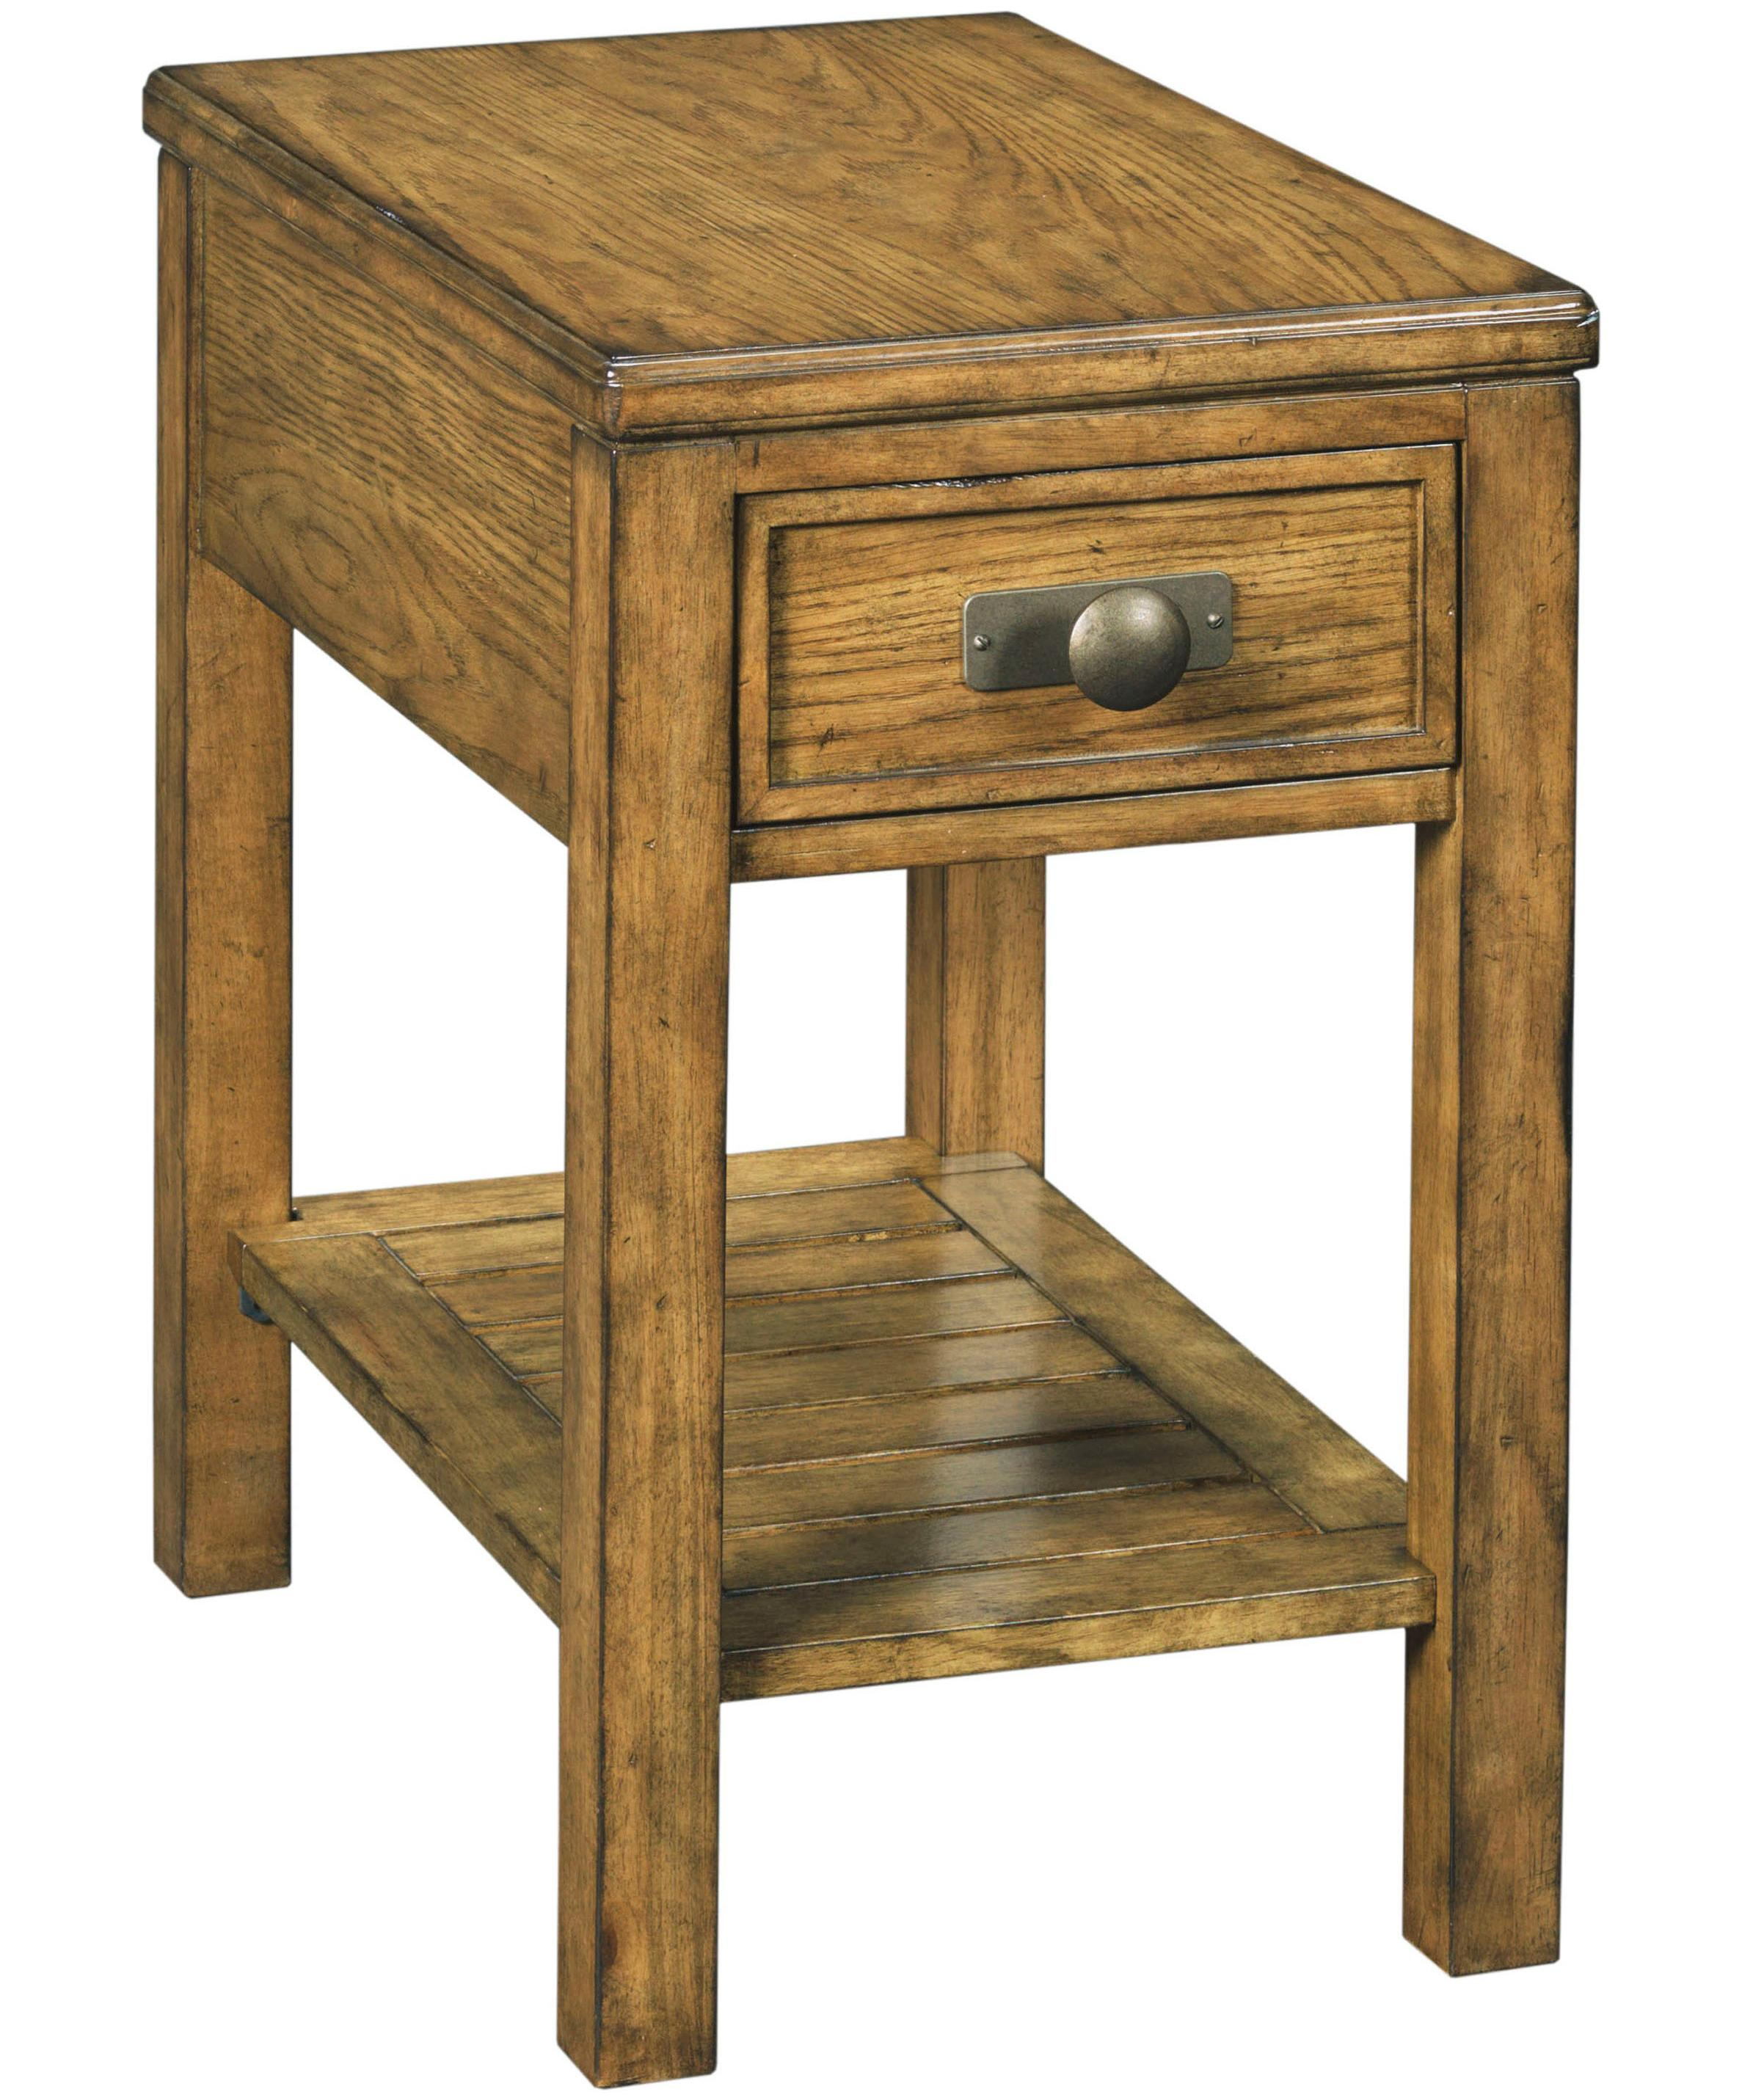 Broyhill Furniture New Vintage Chairside End Table - Item Number: 4808-004